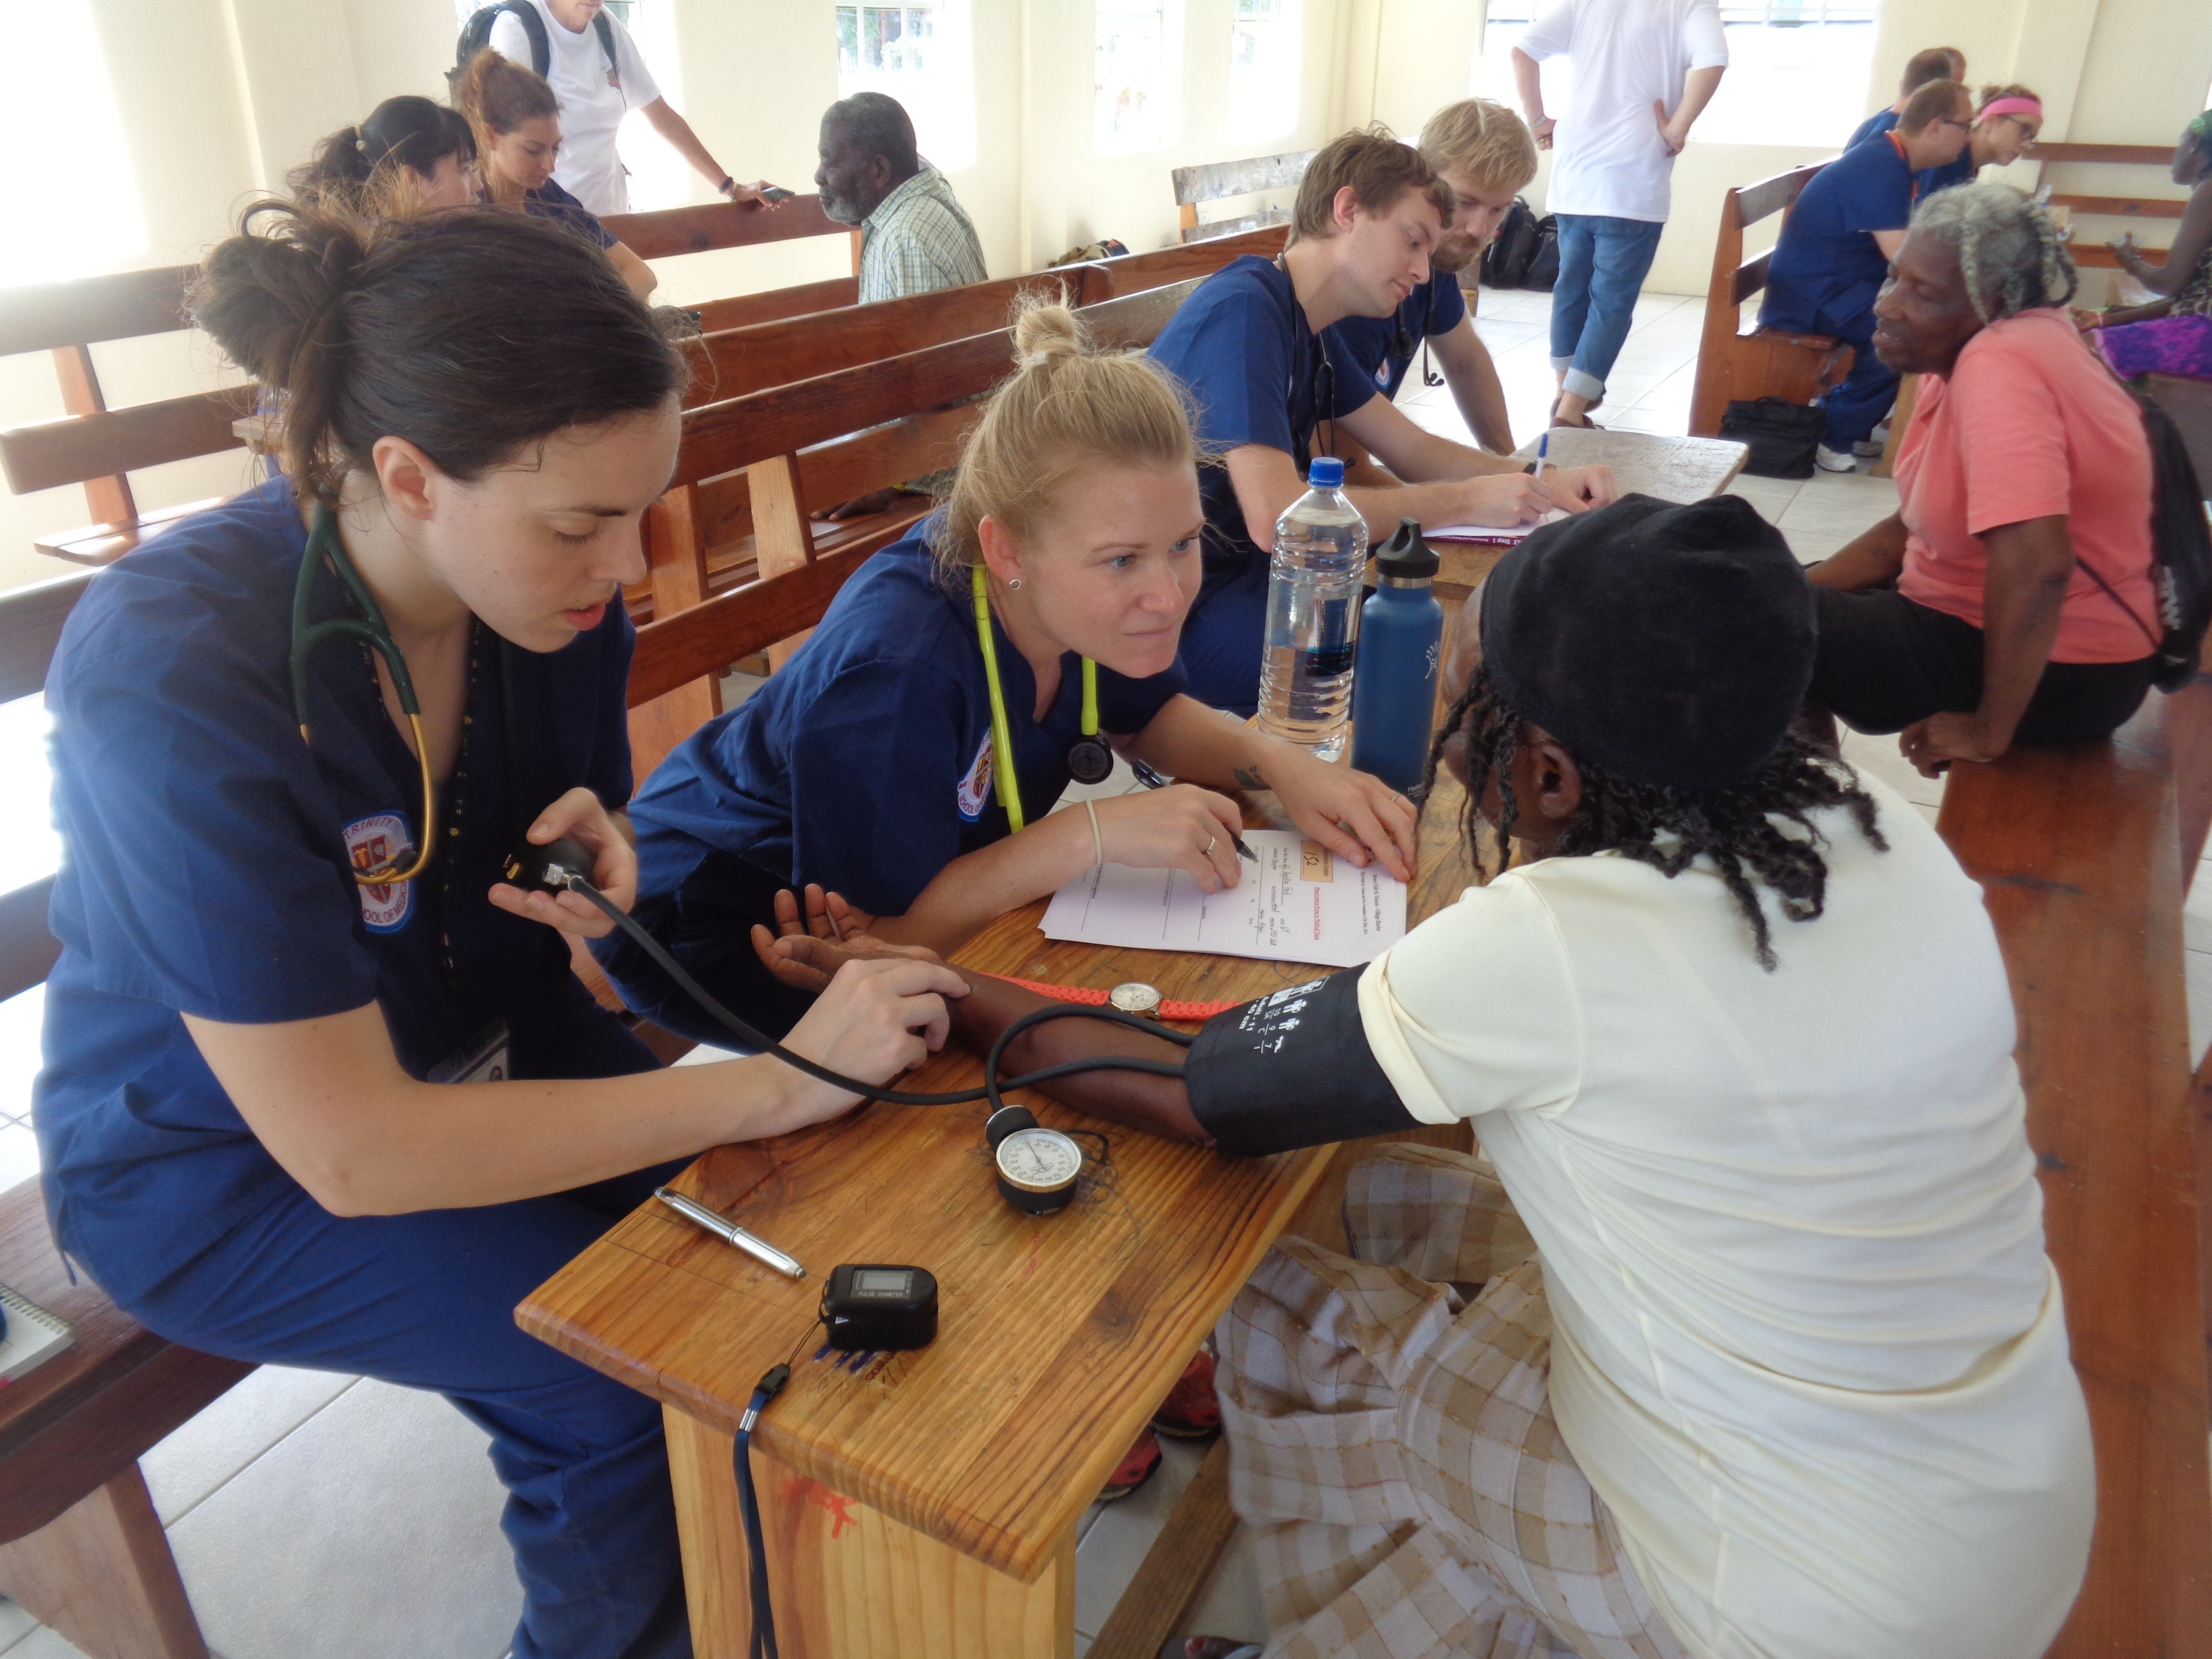 Trinity Students, Faculty, and SVG Rotary Travel to Island of Mayreau for Medical Outreach